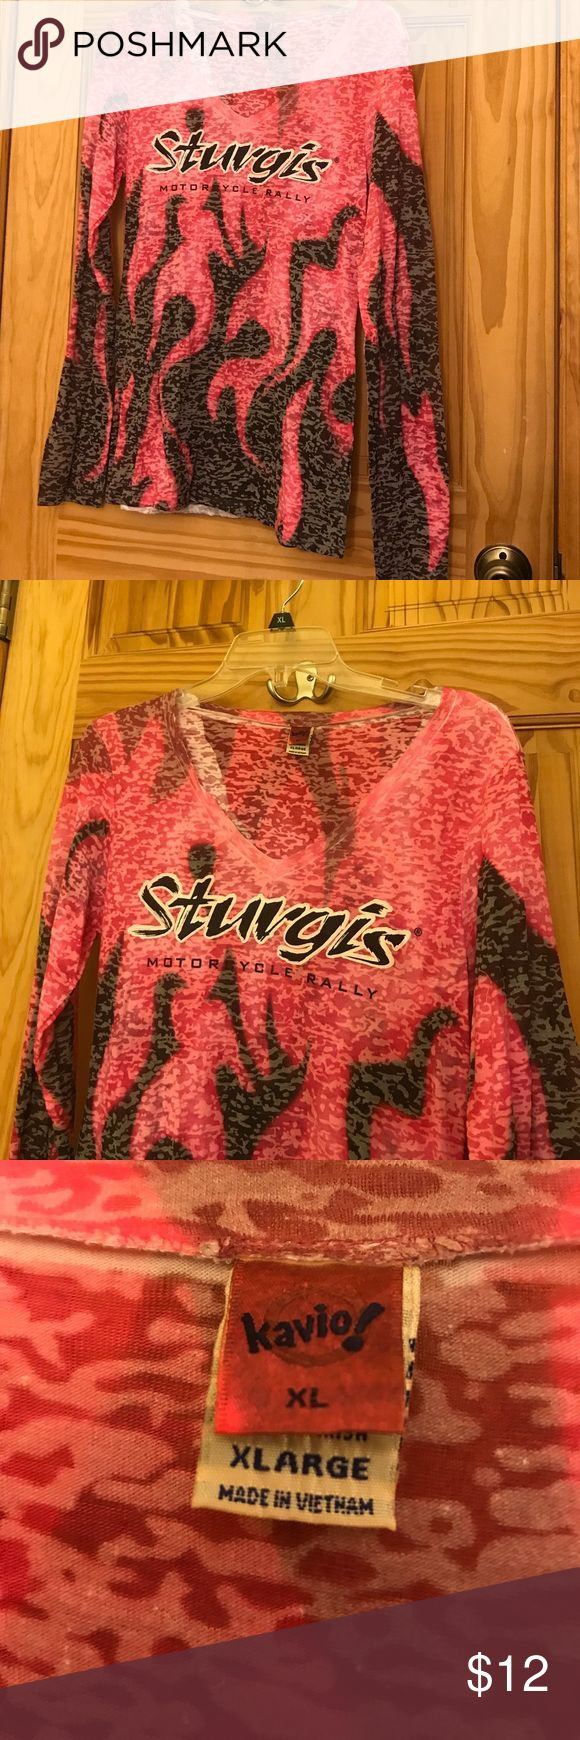 STURGIS Motorcycle 🏍 Rally Burnout Tee Pink and Black STURGIS Motorcycle 🏍 Rally Long Sleeve burnout tee. Tag says XL but runs between medium and large.... This was bought for me and I have never worn it. EXCELLENT CONDITION. Kavio Tops Tees - Long Sleeve